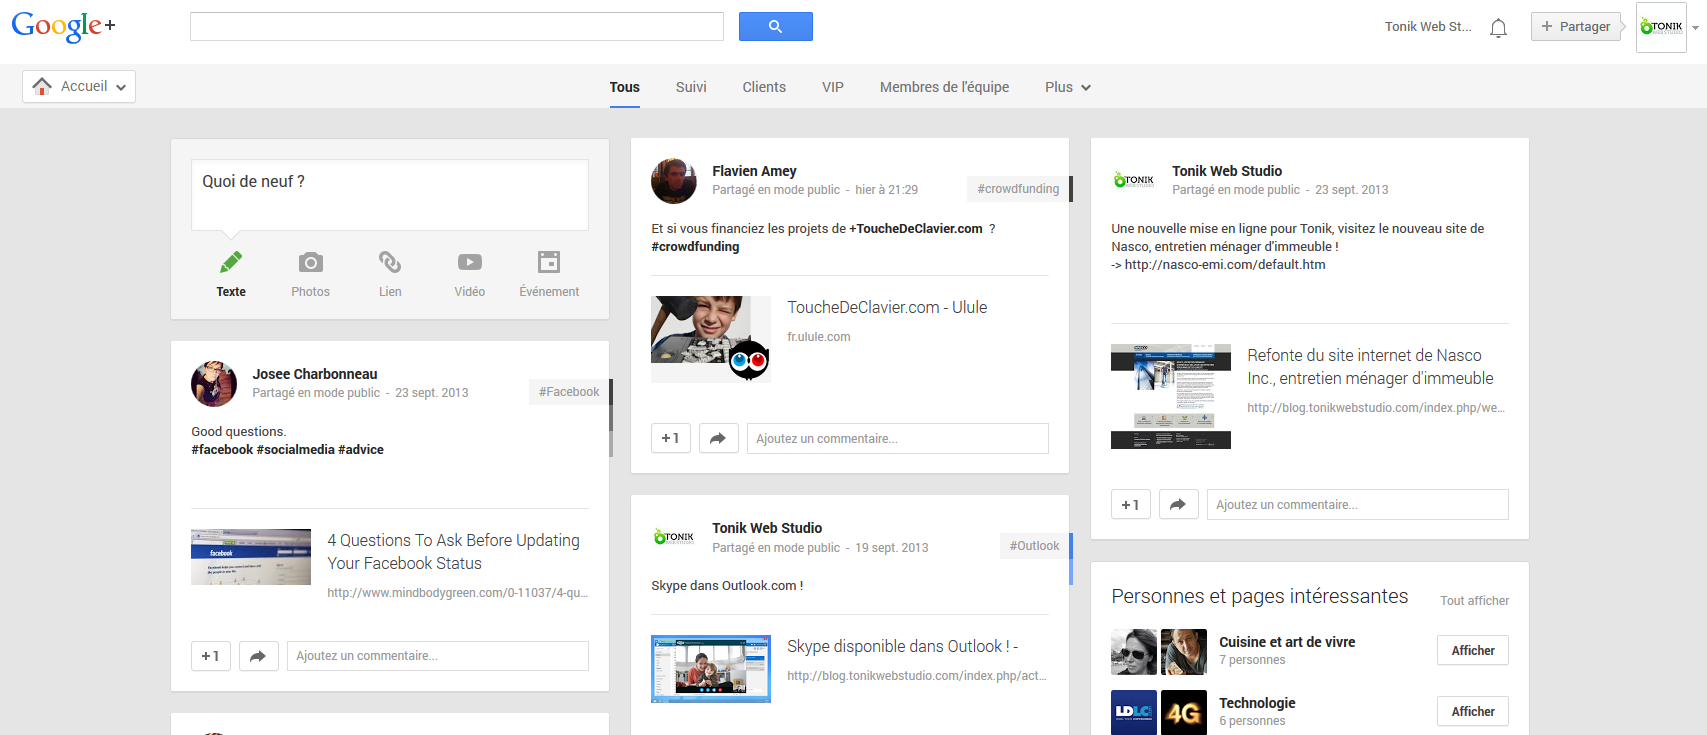 screenshot_google_plus_tonik_web_studio